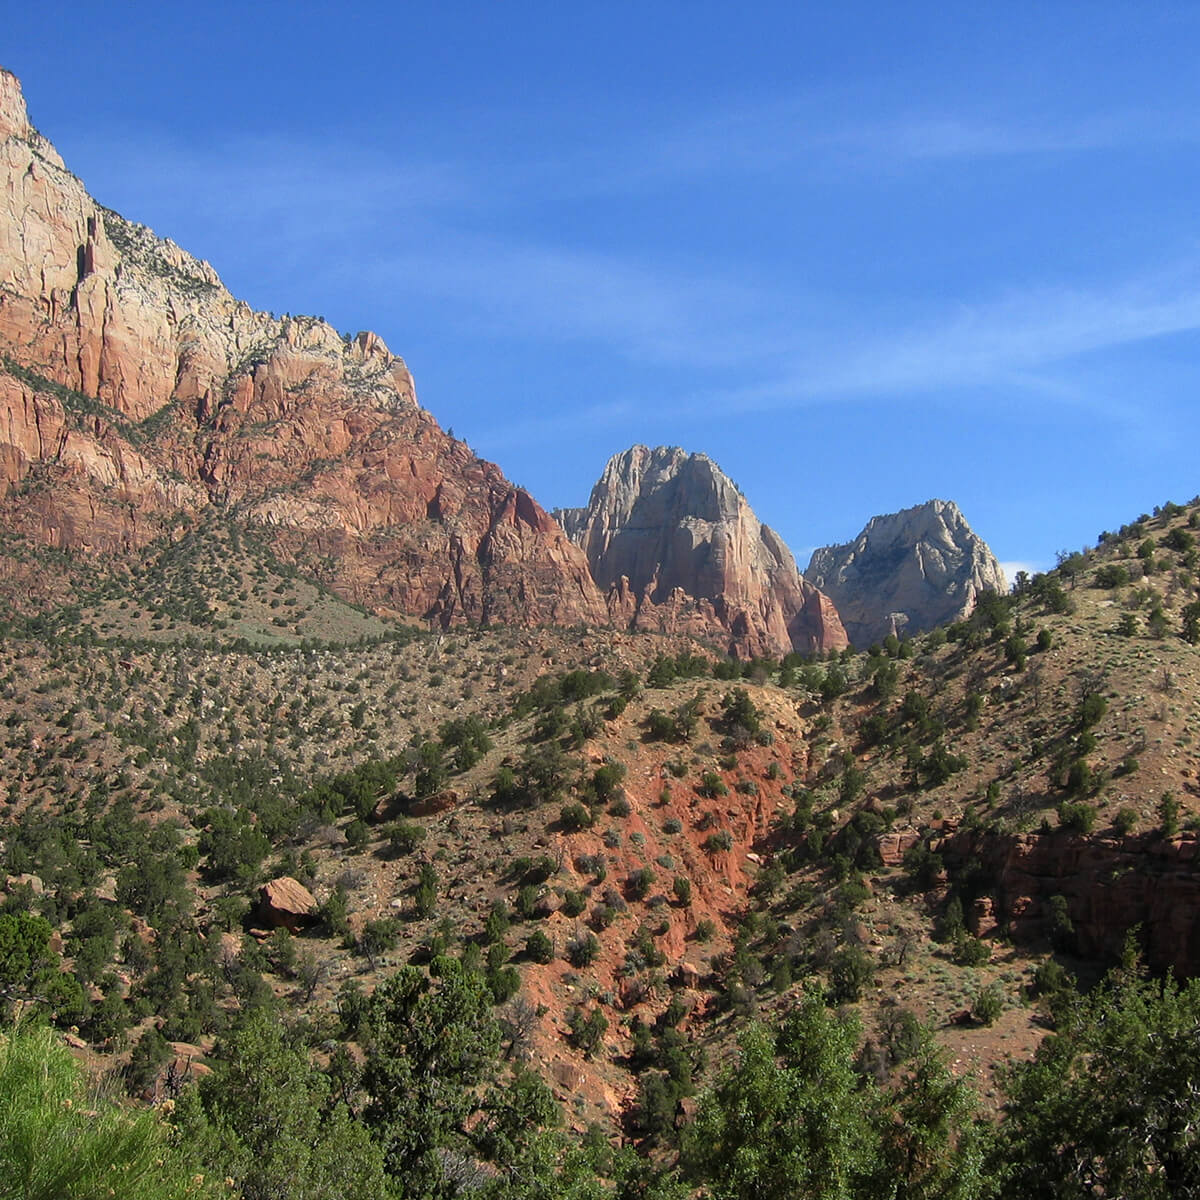 Mountains in Zion National Park